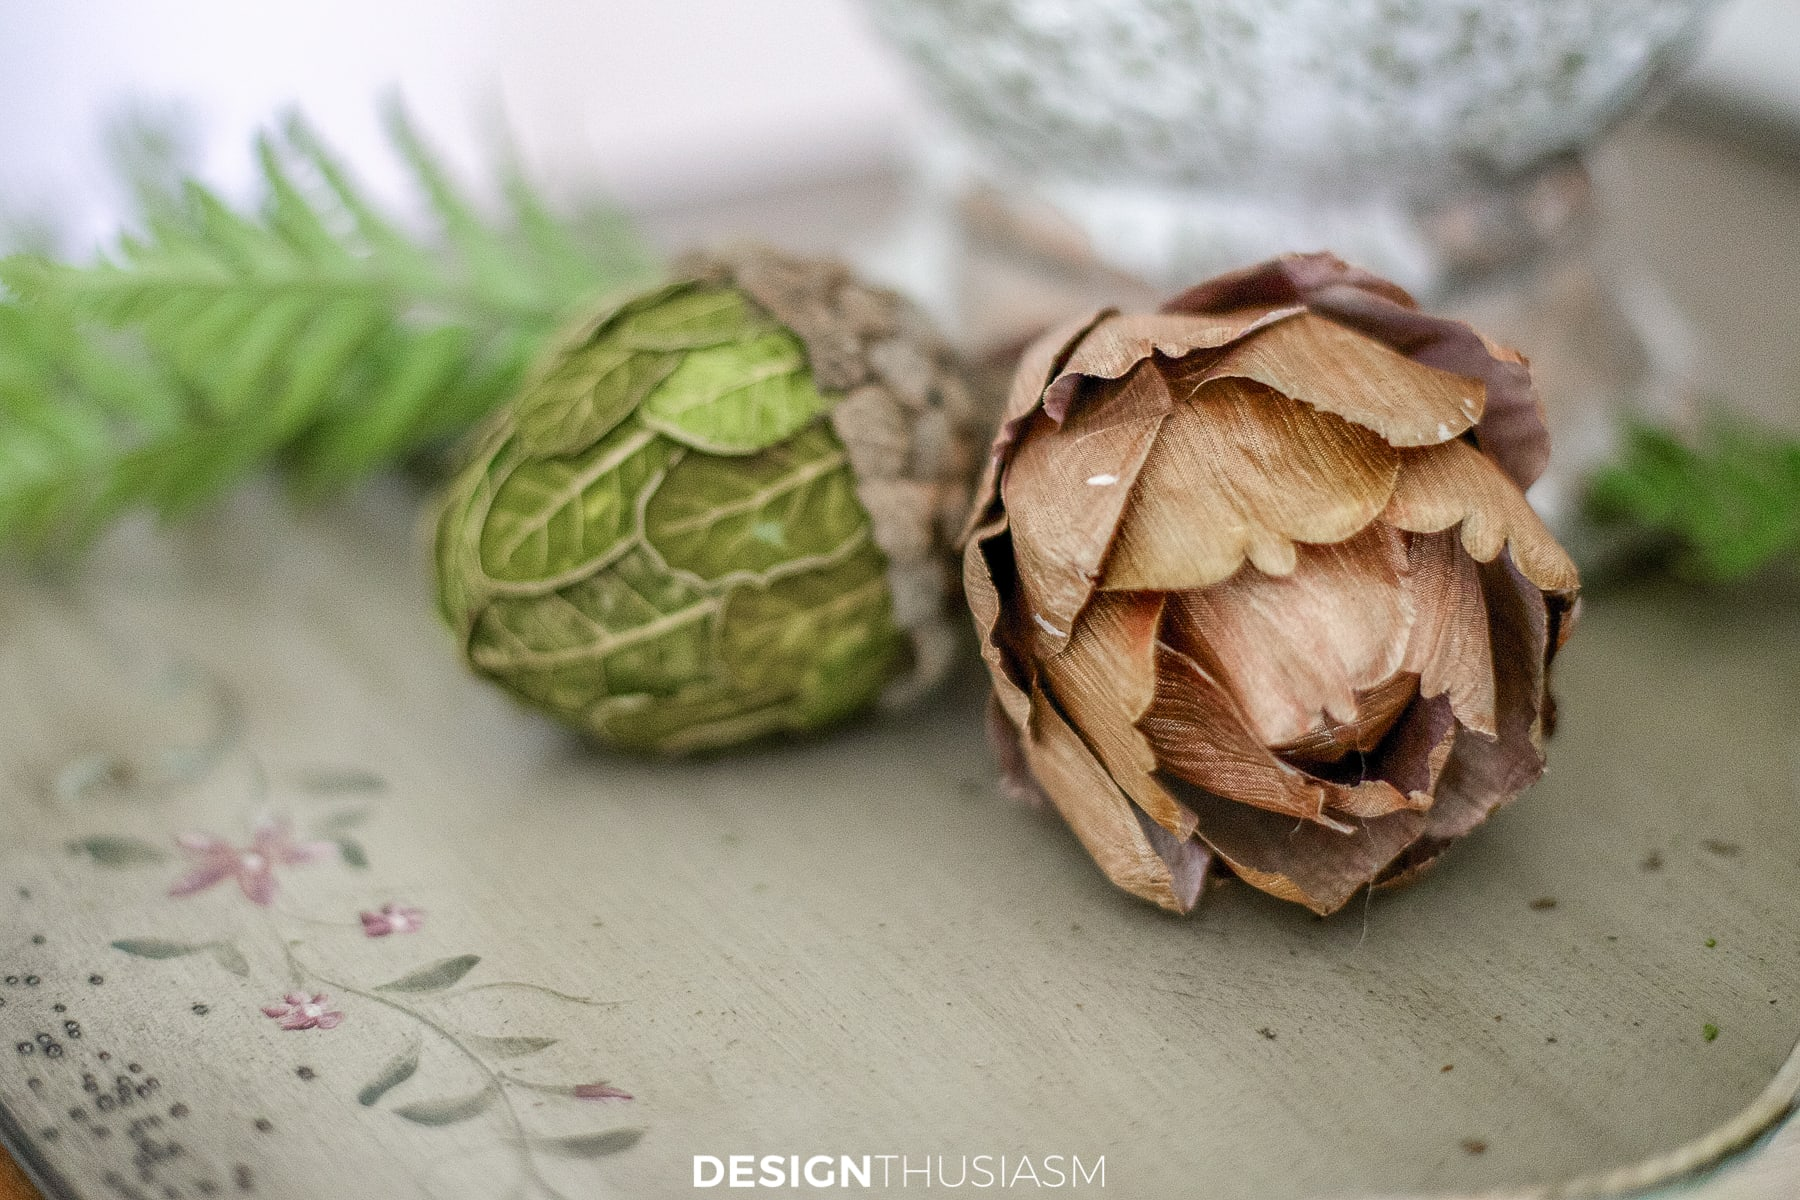 acorn and artichoke ornaments